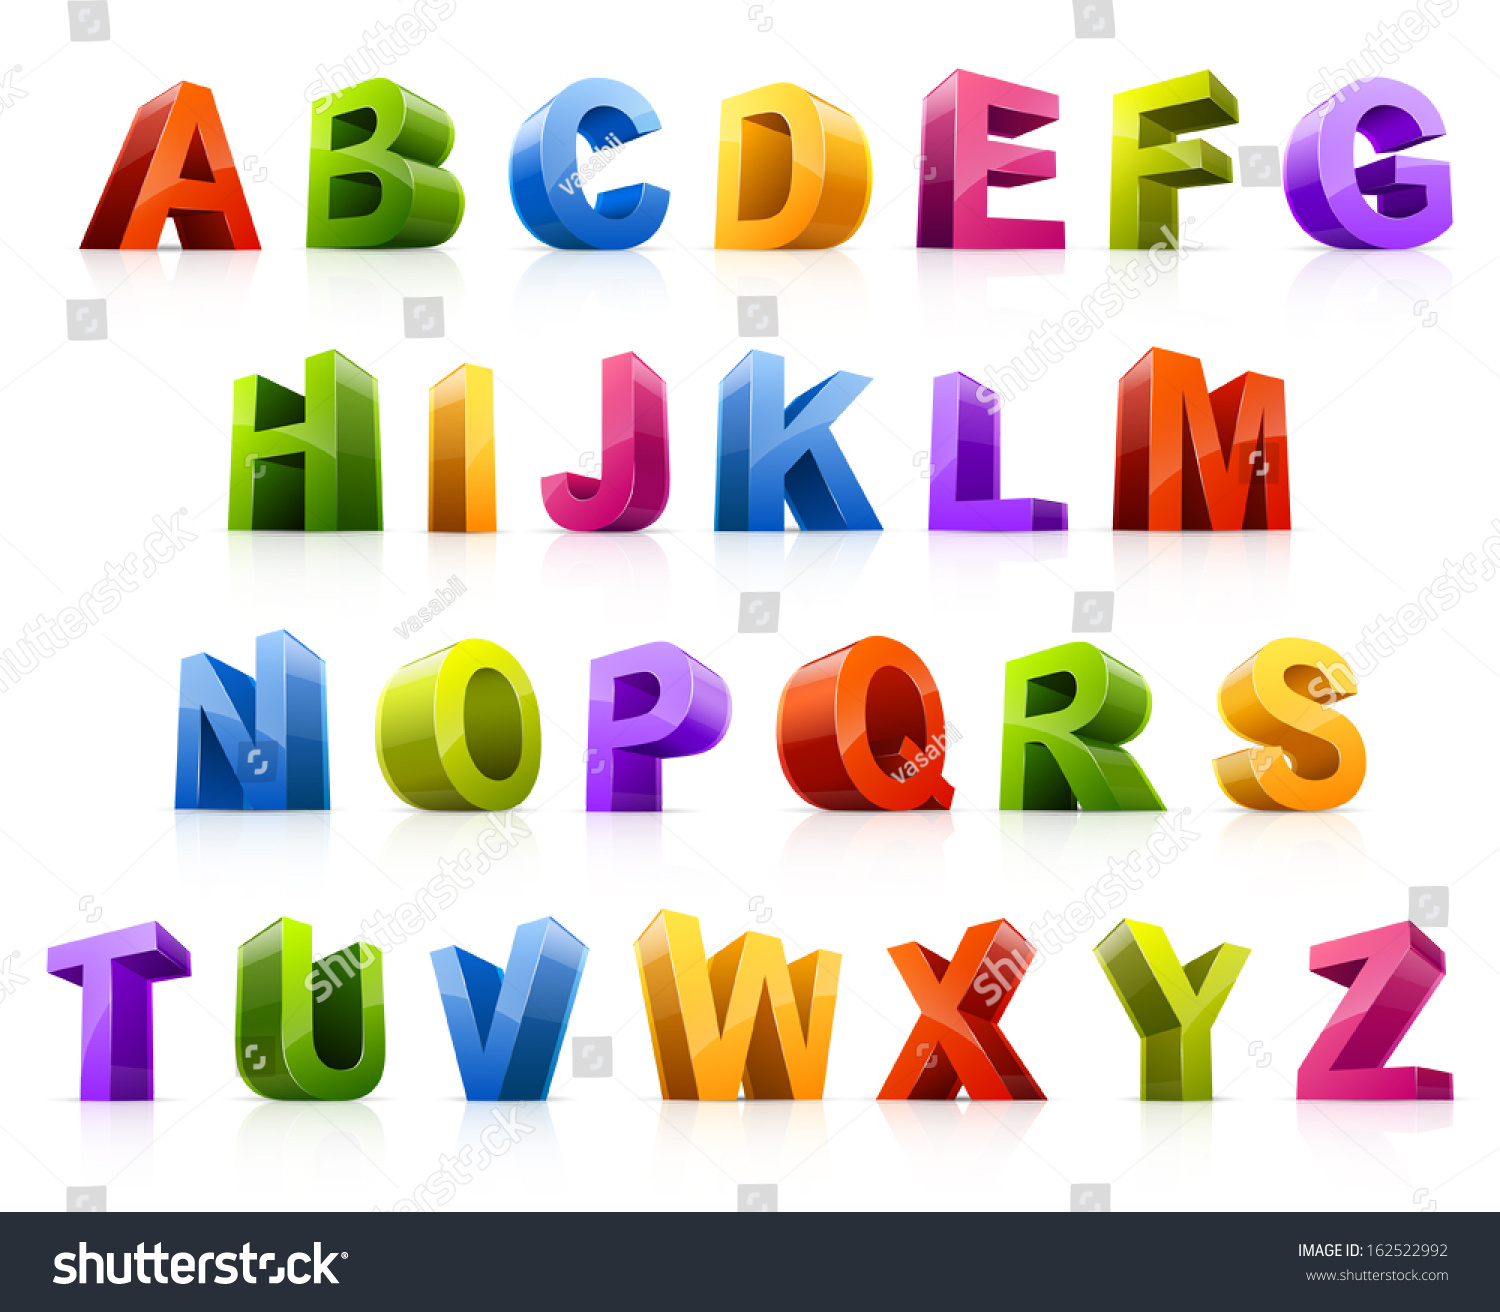 vector illustration of colorful three dimensional letters